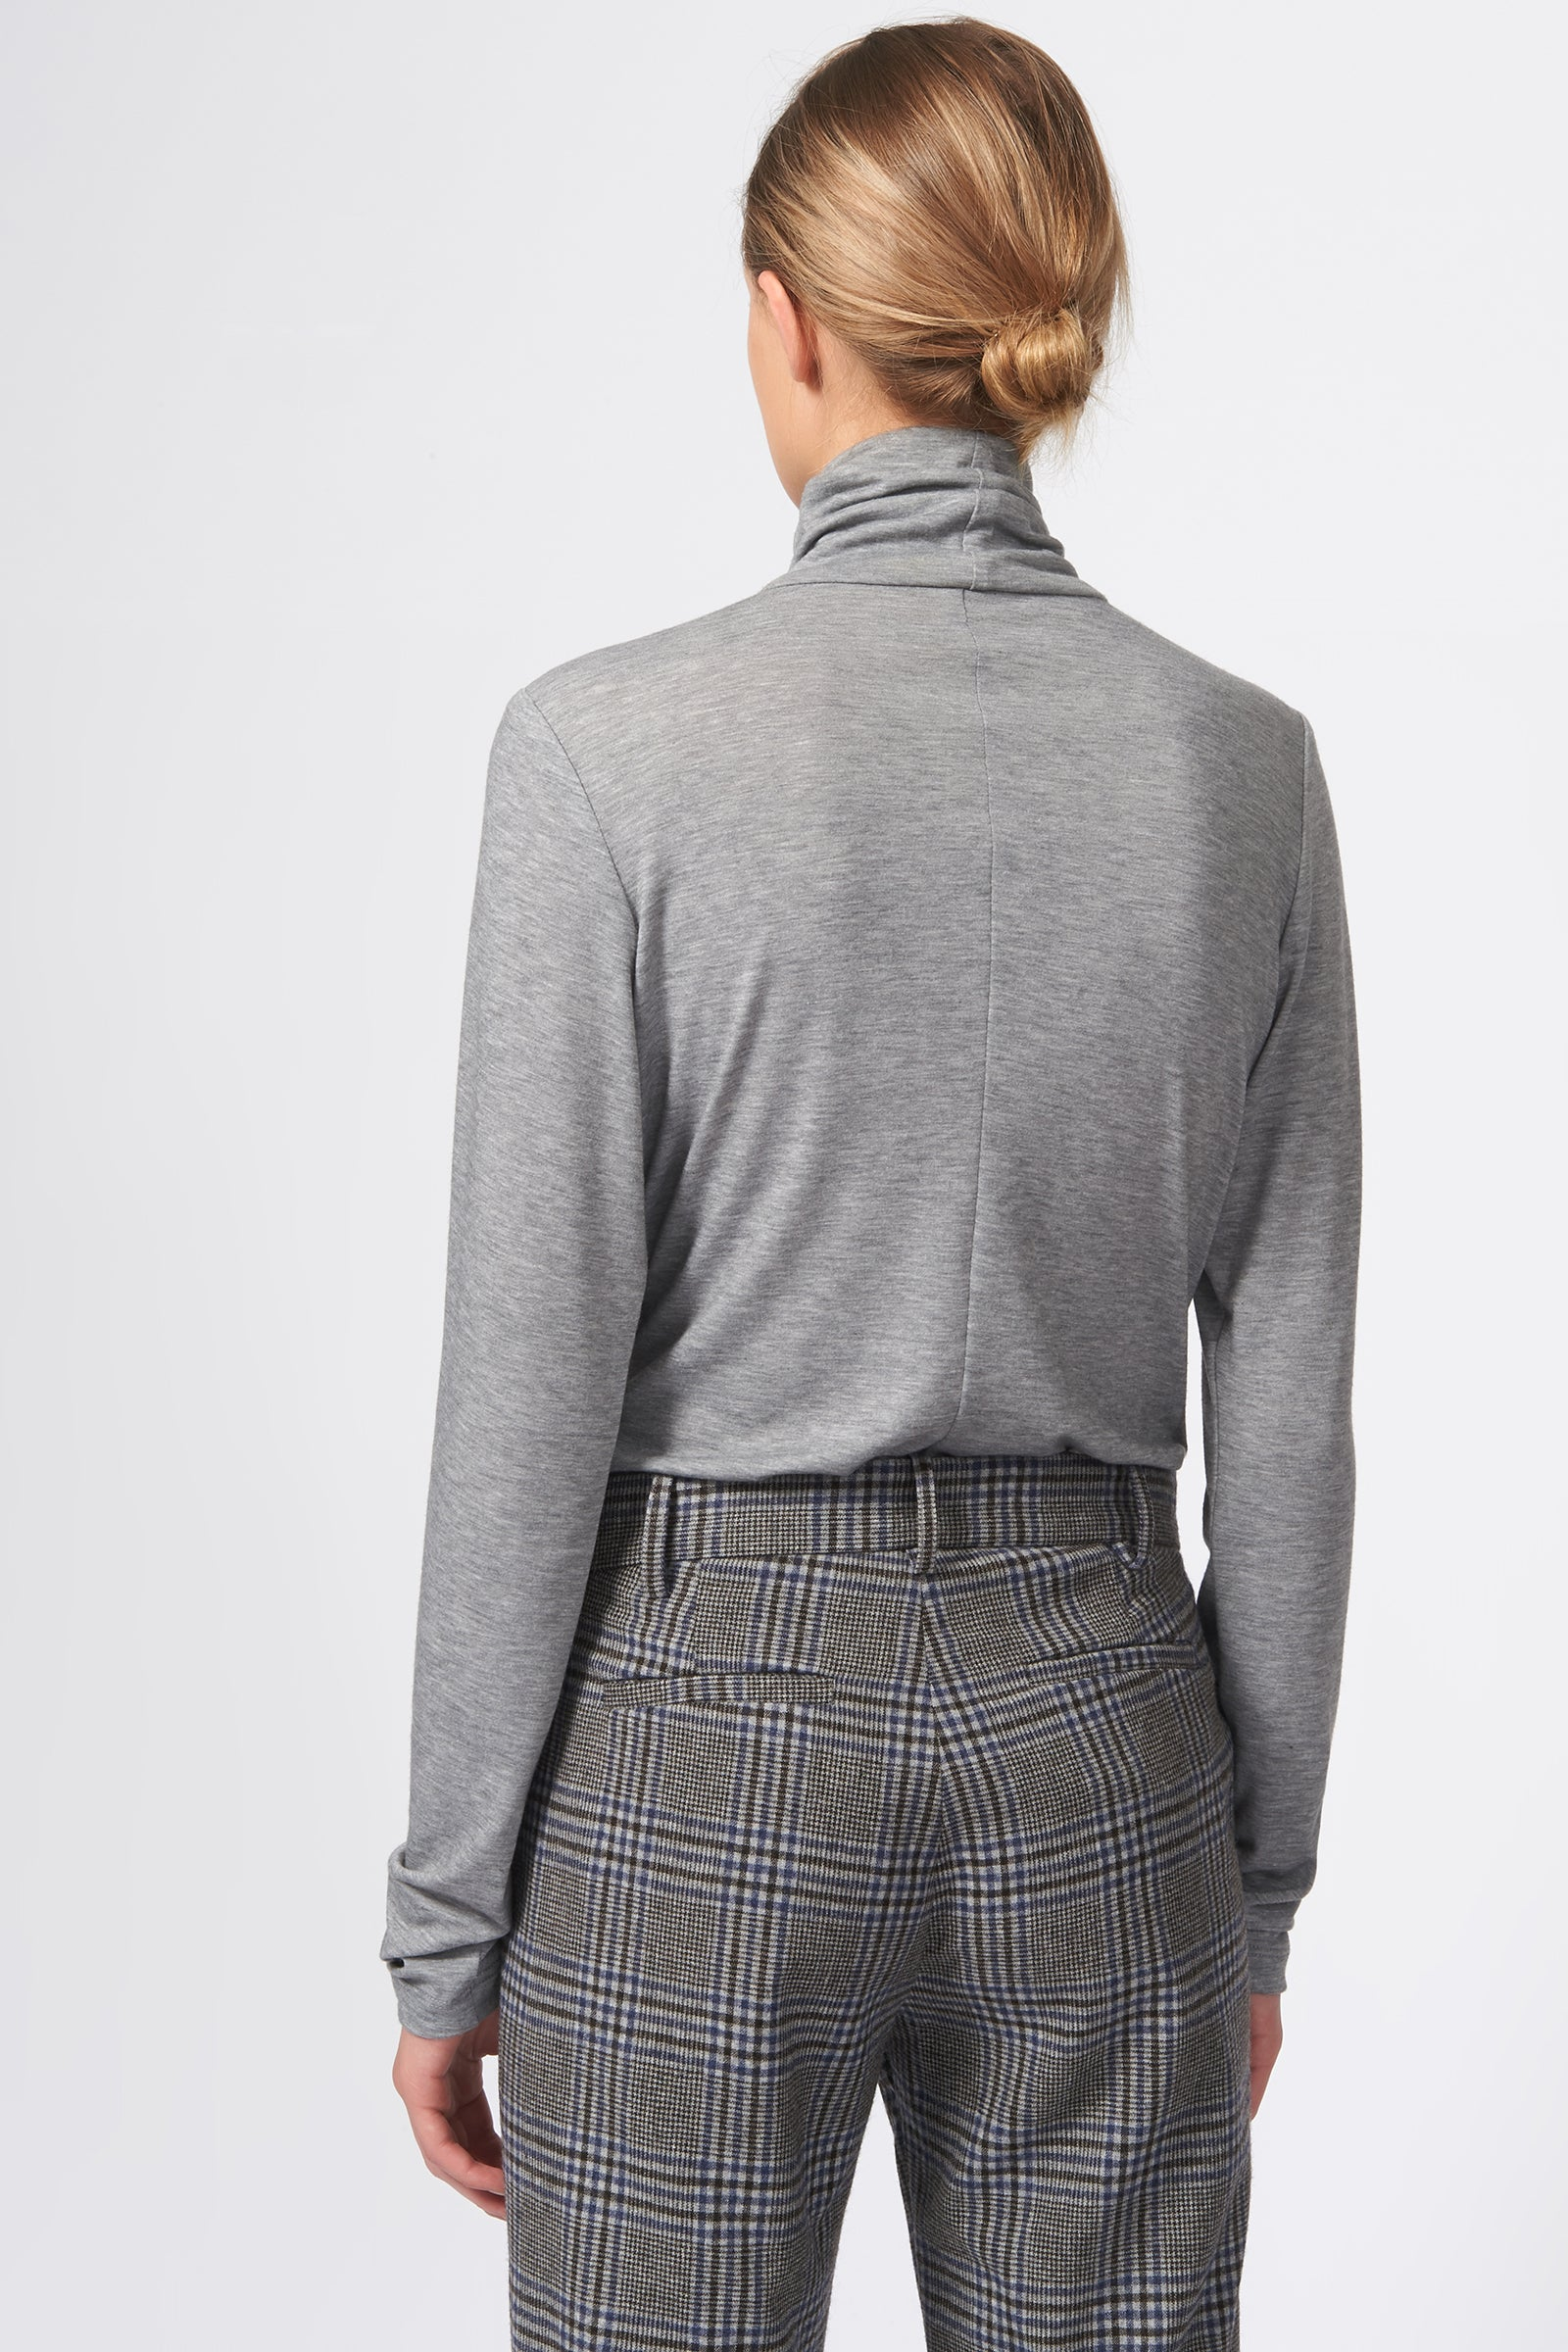 Kal Rieman Cigarette Pant in Grey Plaid on Model Back View